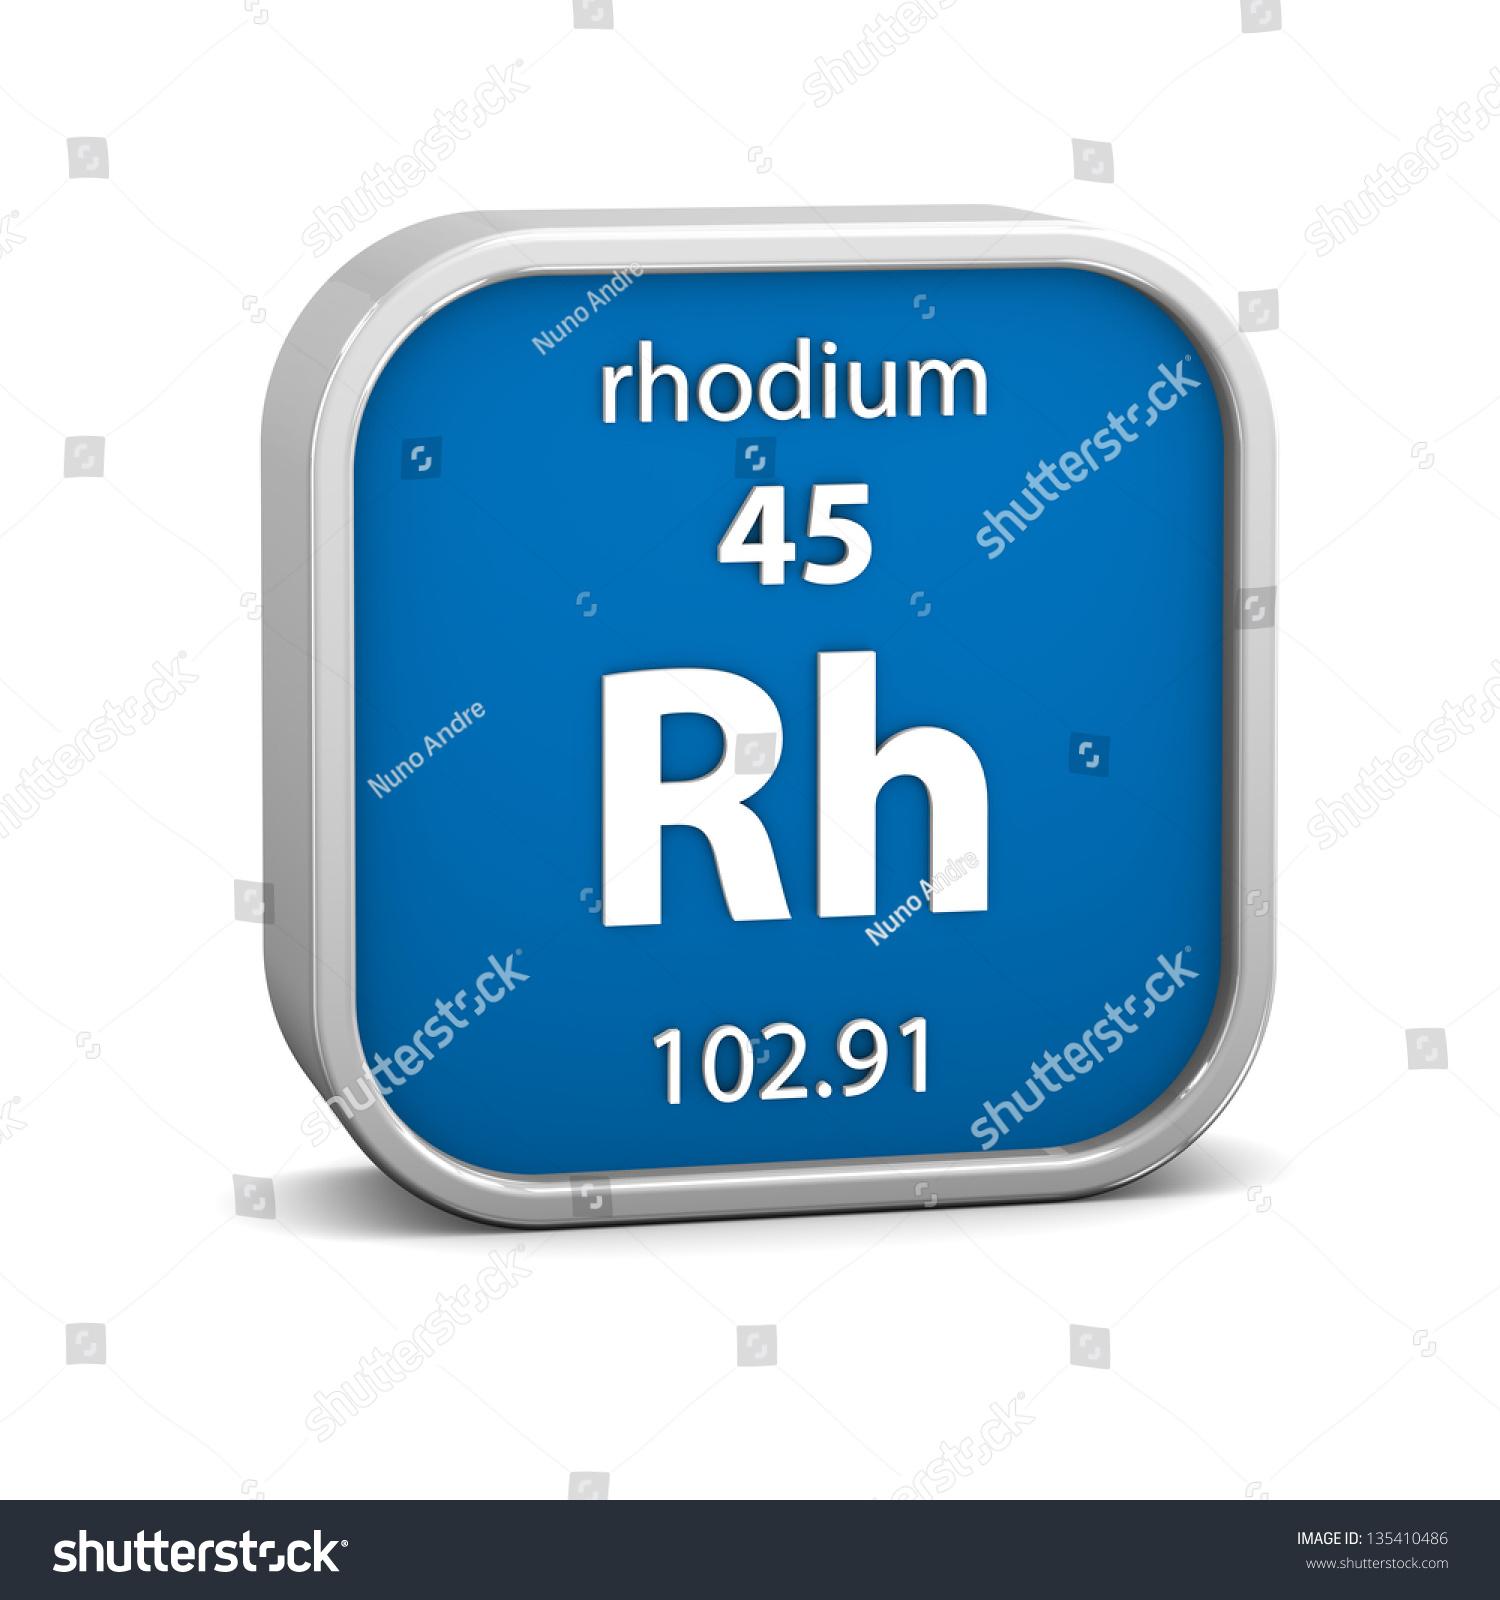 Rhodium material on periodic table part stock illustration rhodium material on the periodic table part of a series gamestrikefo Image collections